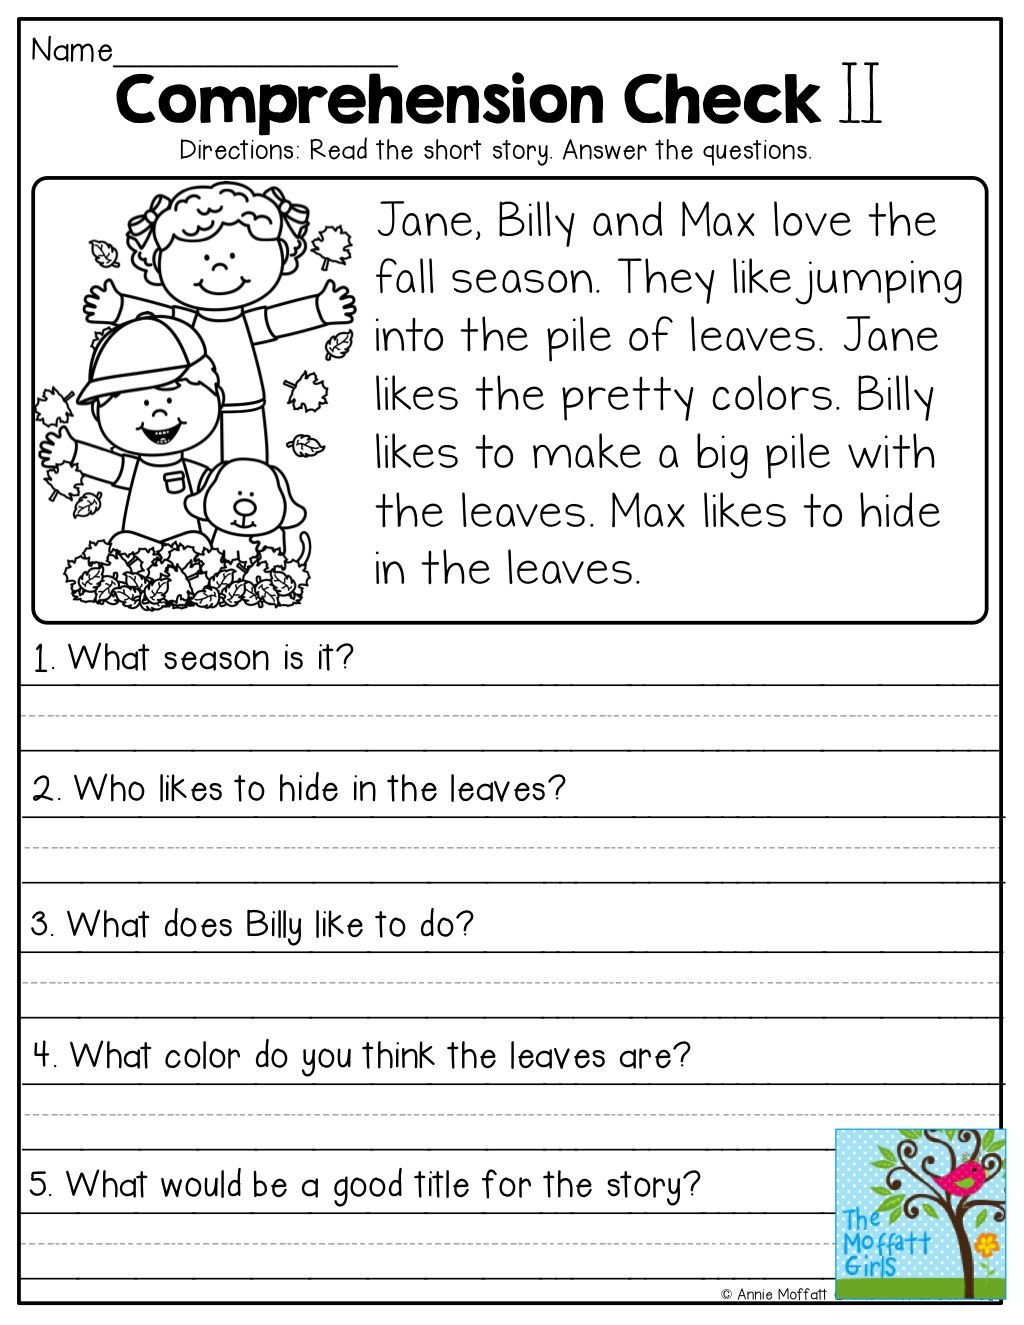 Free 1st Grade Comprehension Worksheets Image Result for October Reading Prehension Worksheets